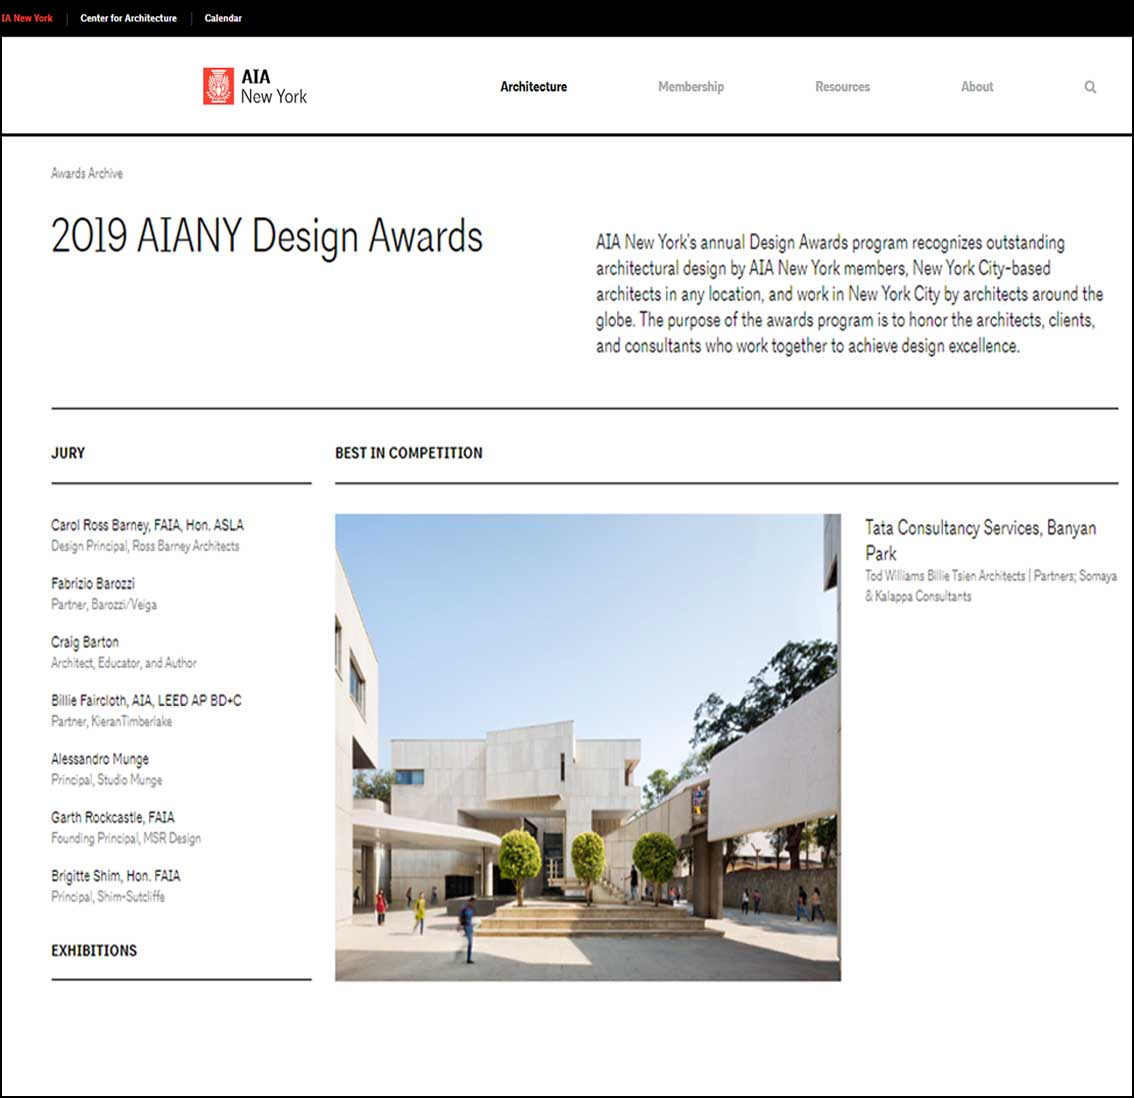 Tata Consultancy Services, Banyan Park, AIANY Design Awards - January 2019